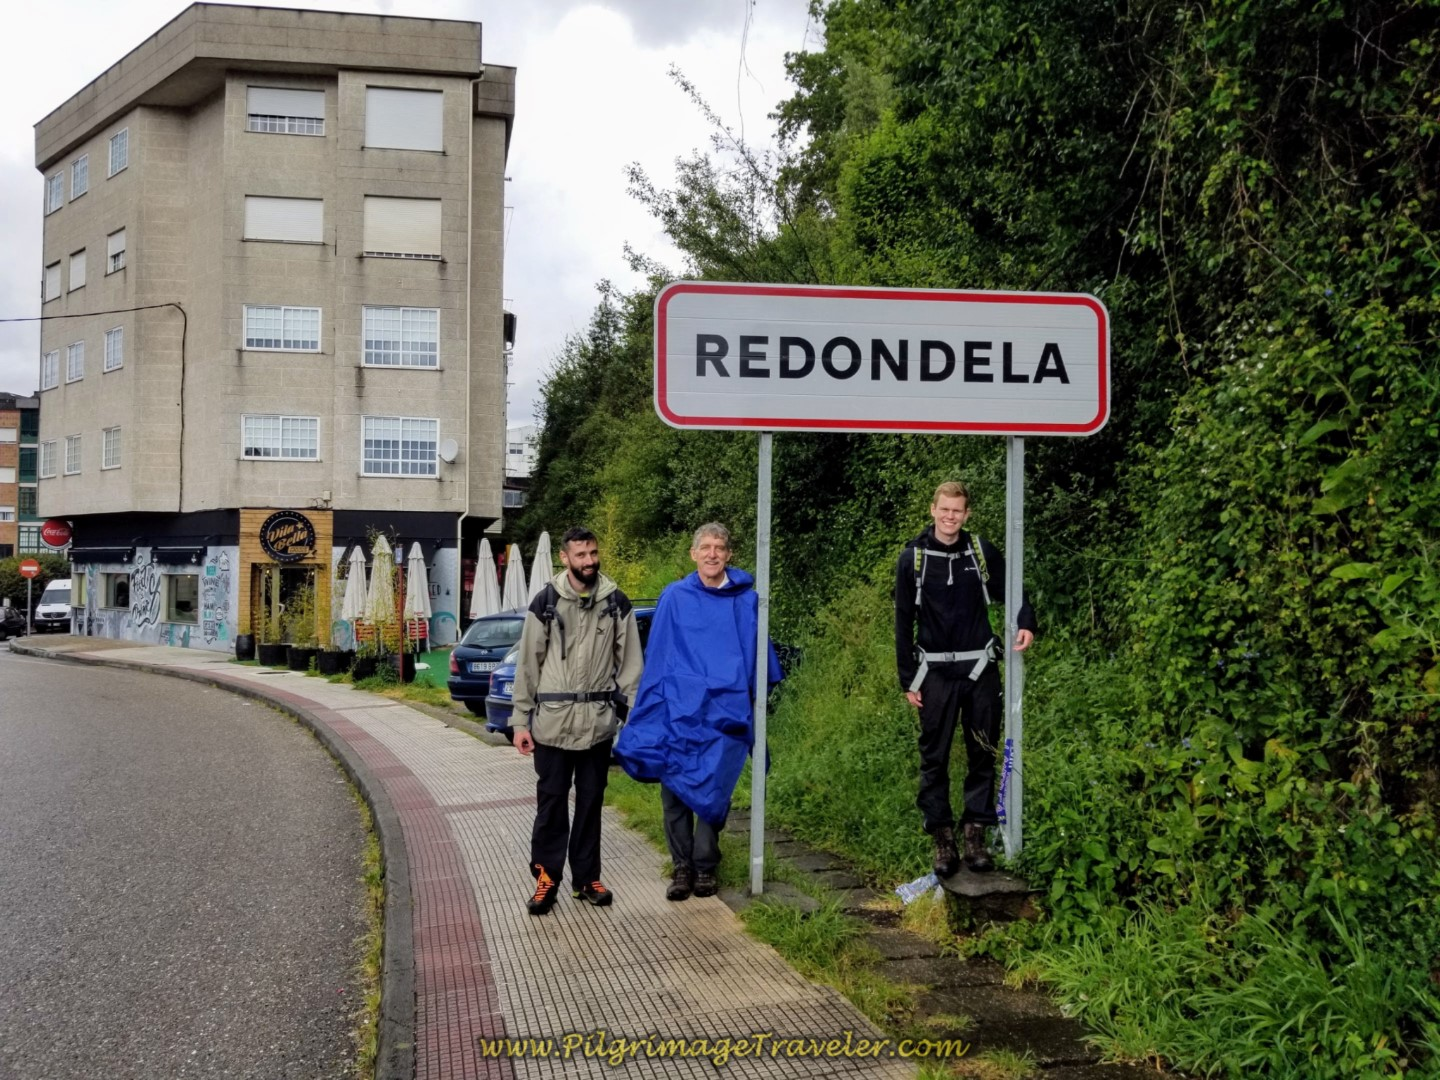 Welcome to Redondela on day twenty-one of the central route of the Portuguese Camino